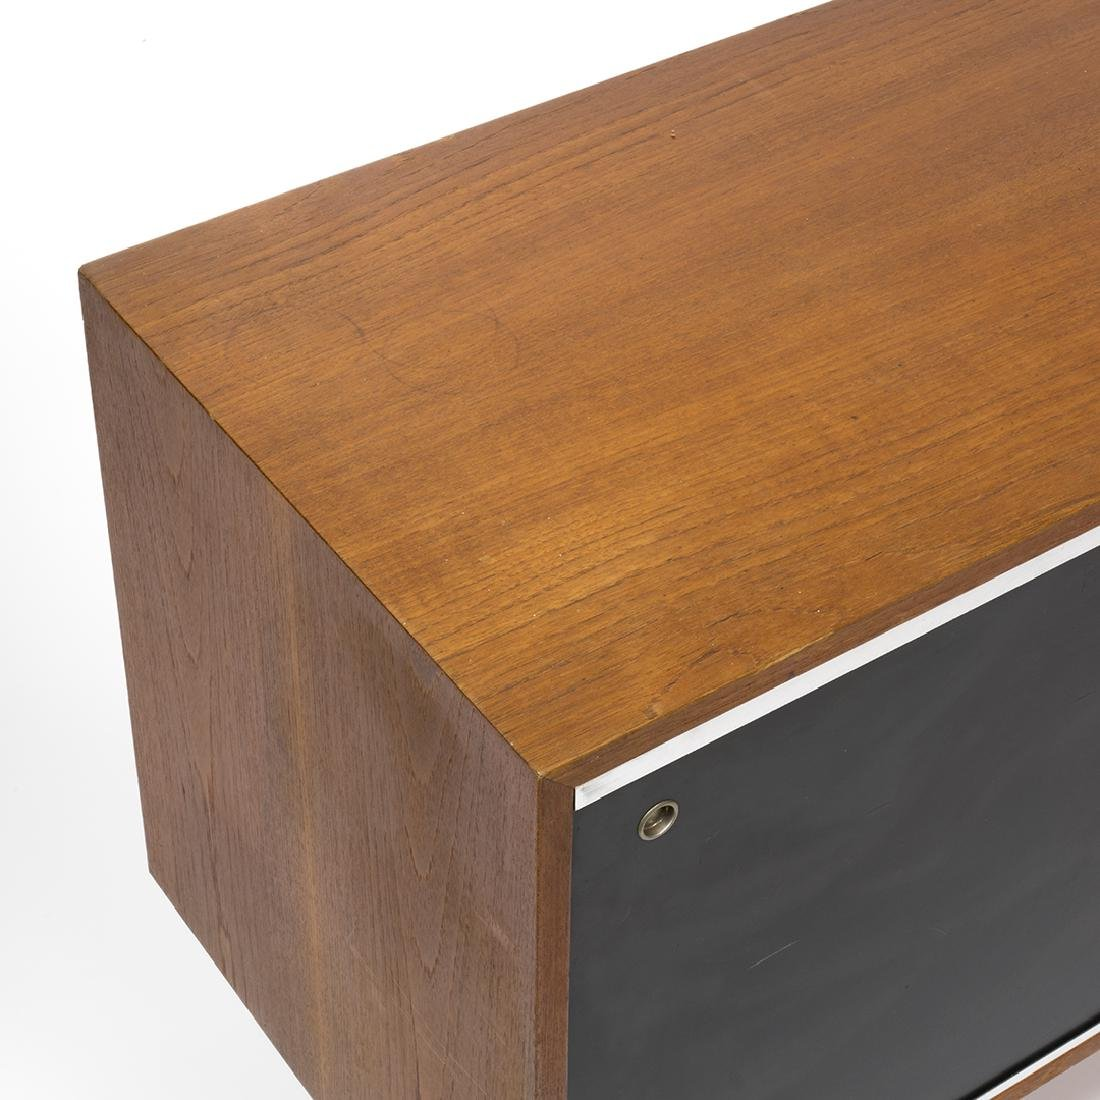 George Nelson Credenza - 4